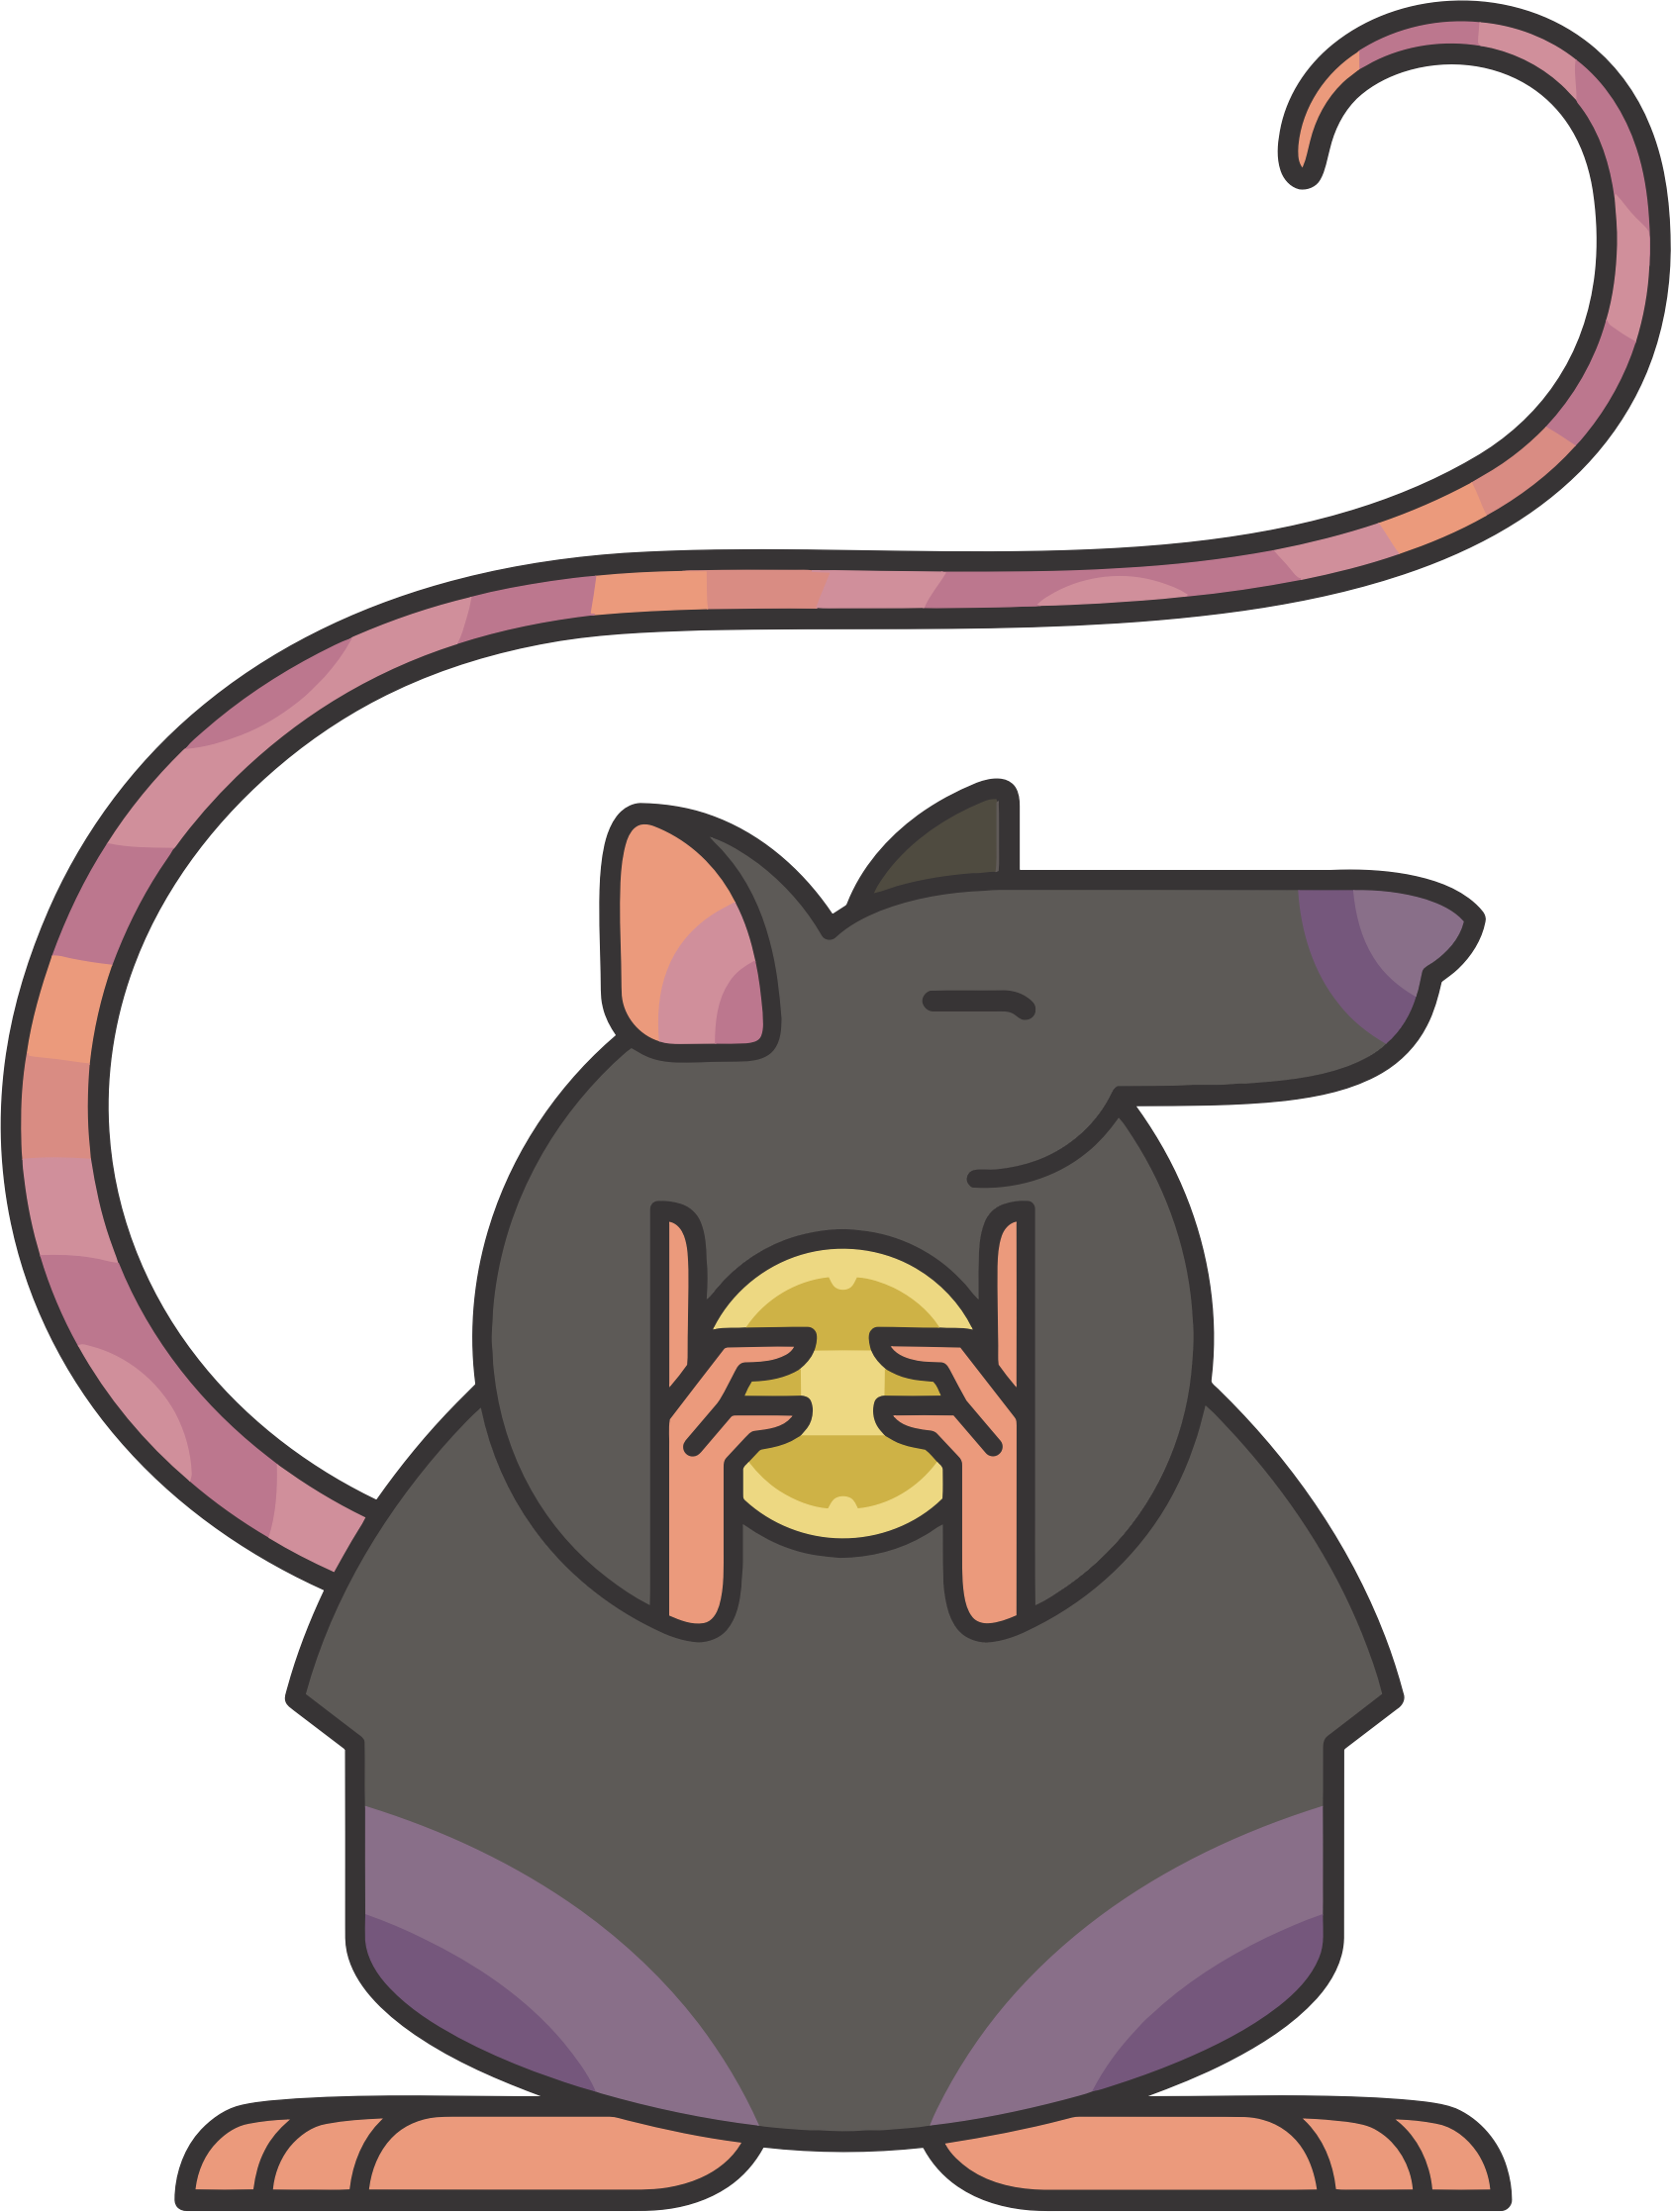 Stylized Cartoon Rat by GDJ